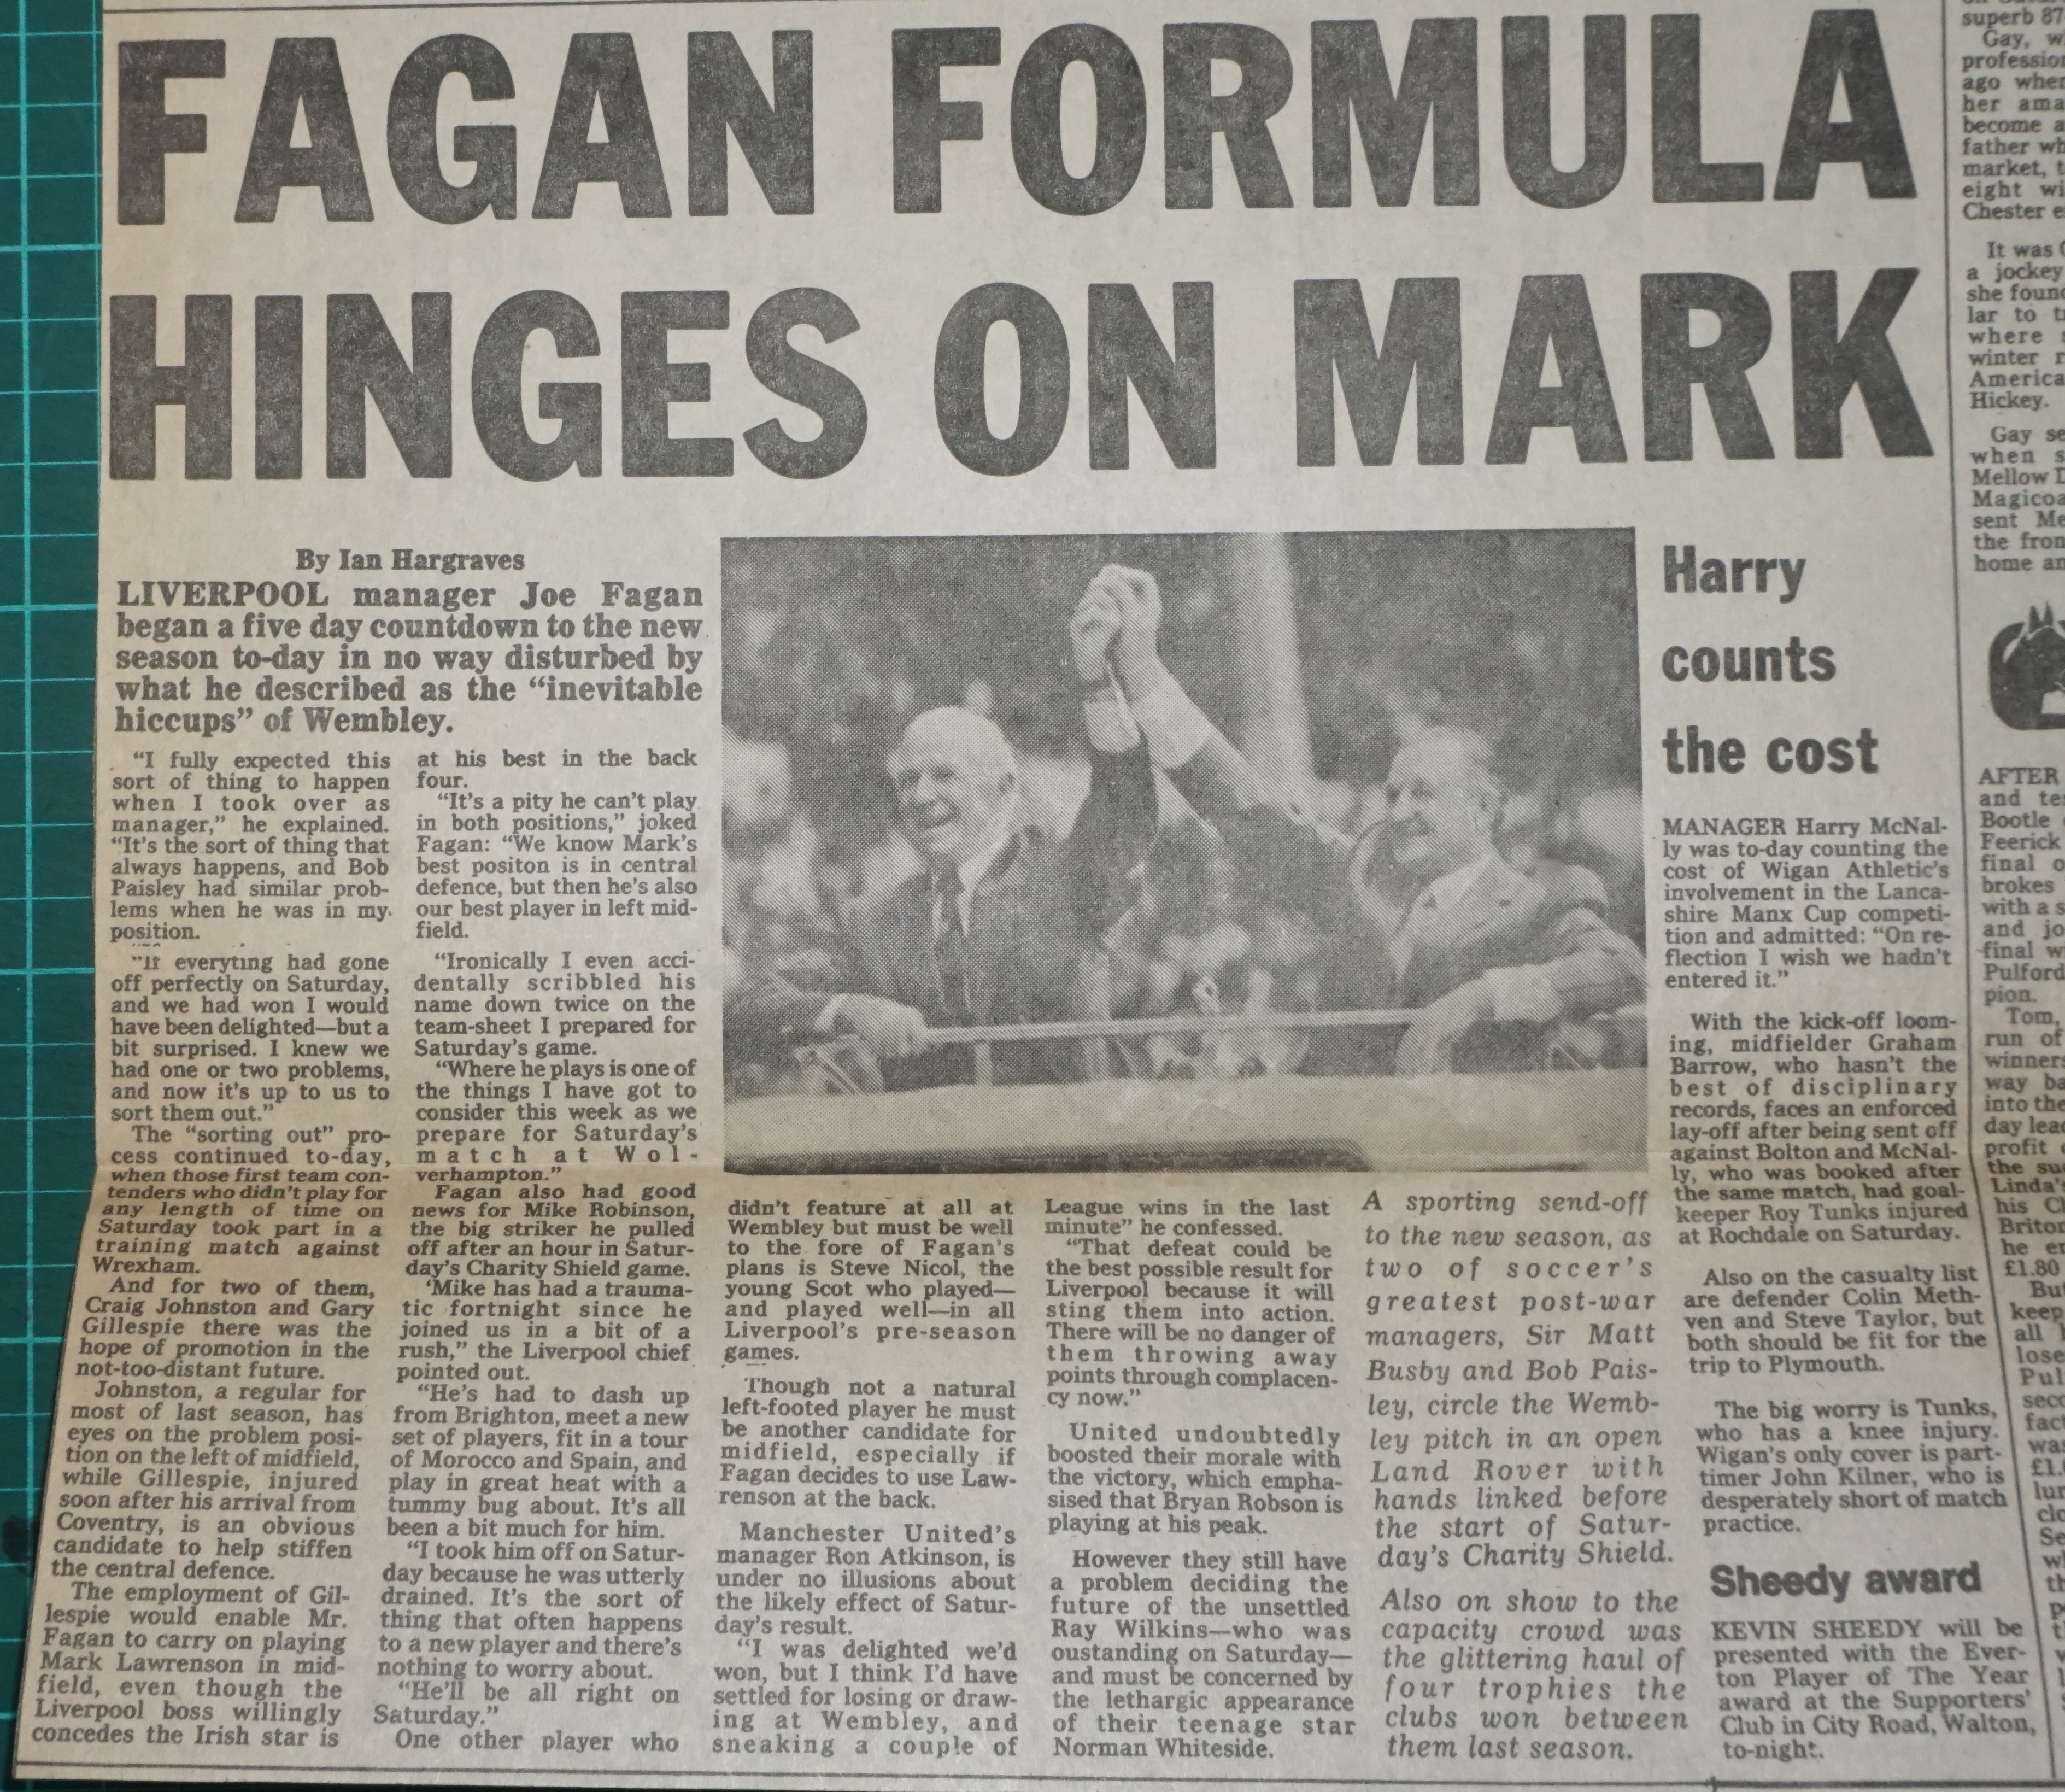 Fagan formula hinges on Mark - August 1983